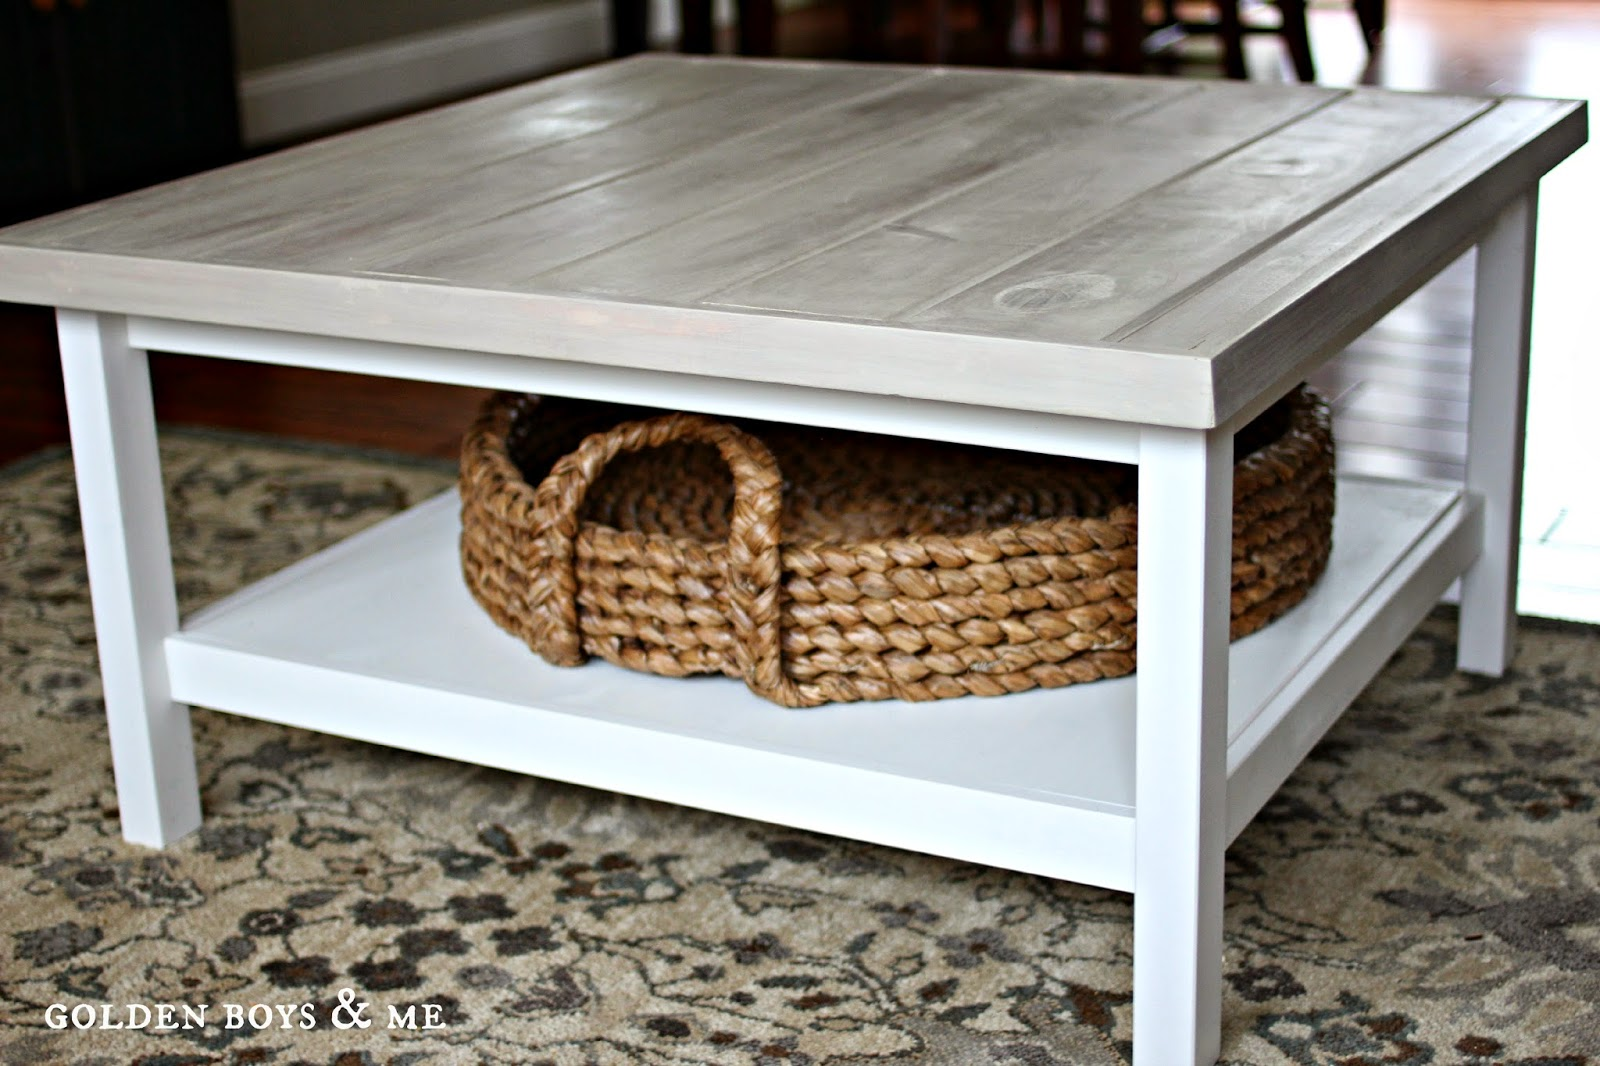 Golden boys and me coffee table ikea hack - Table basse coffre ikea ...